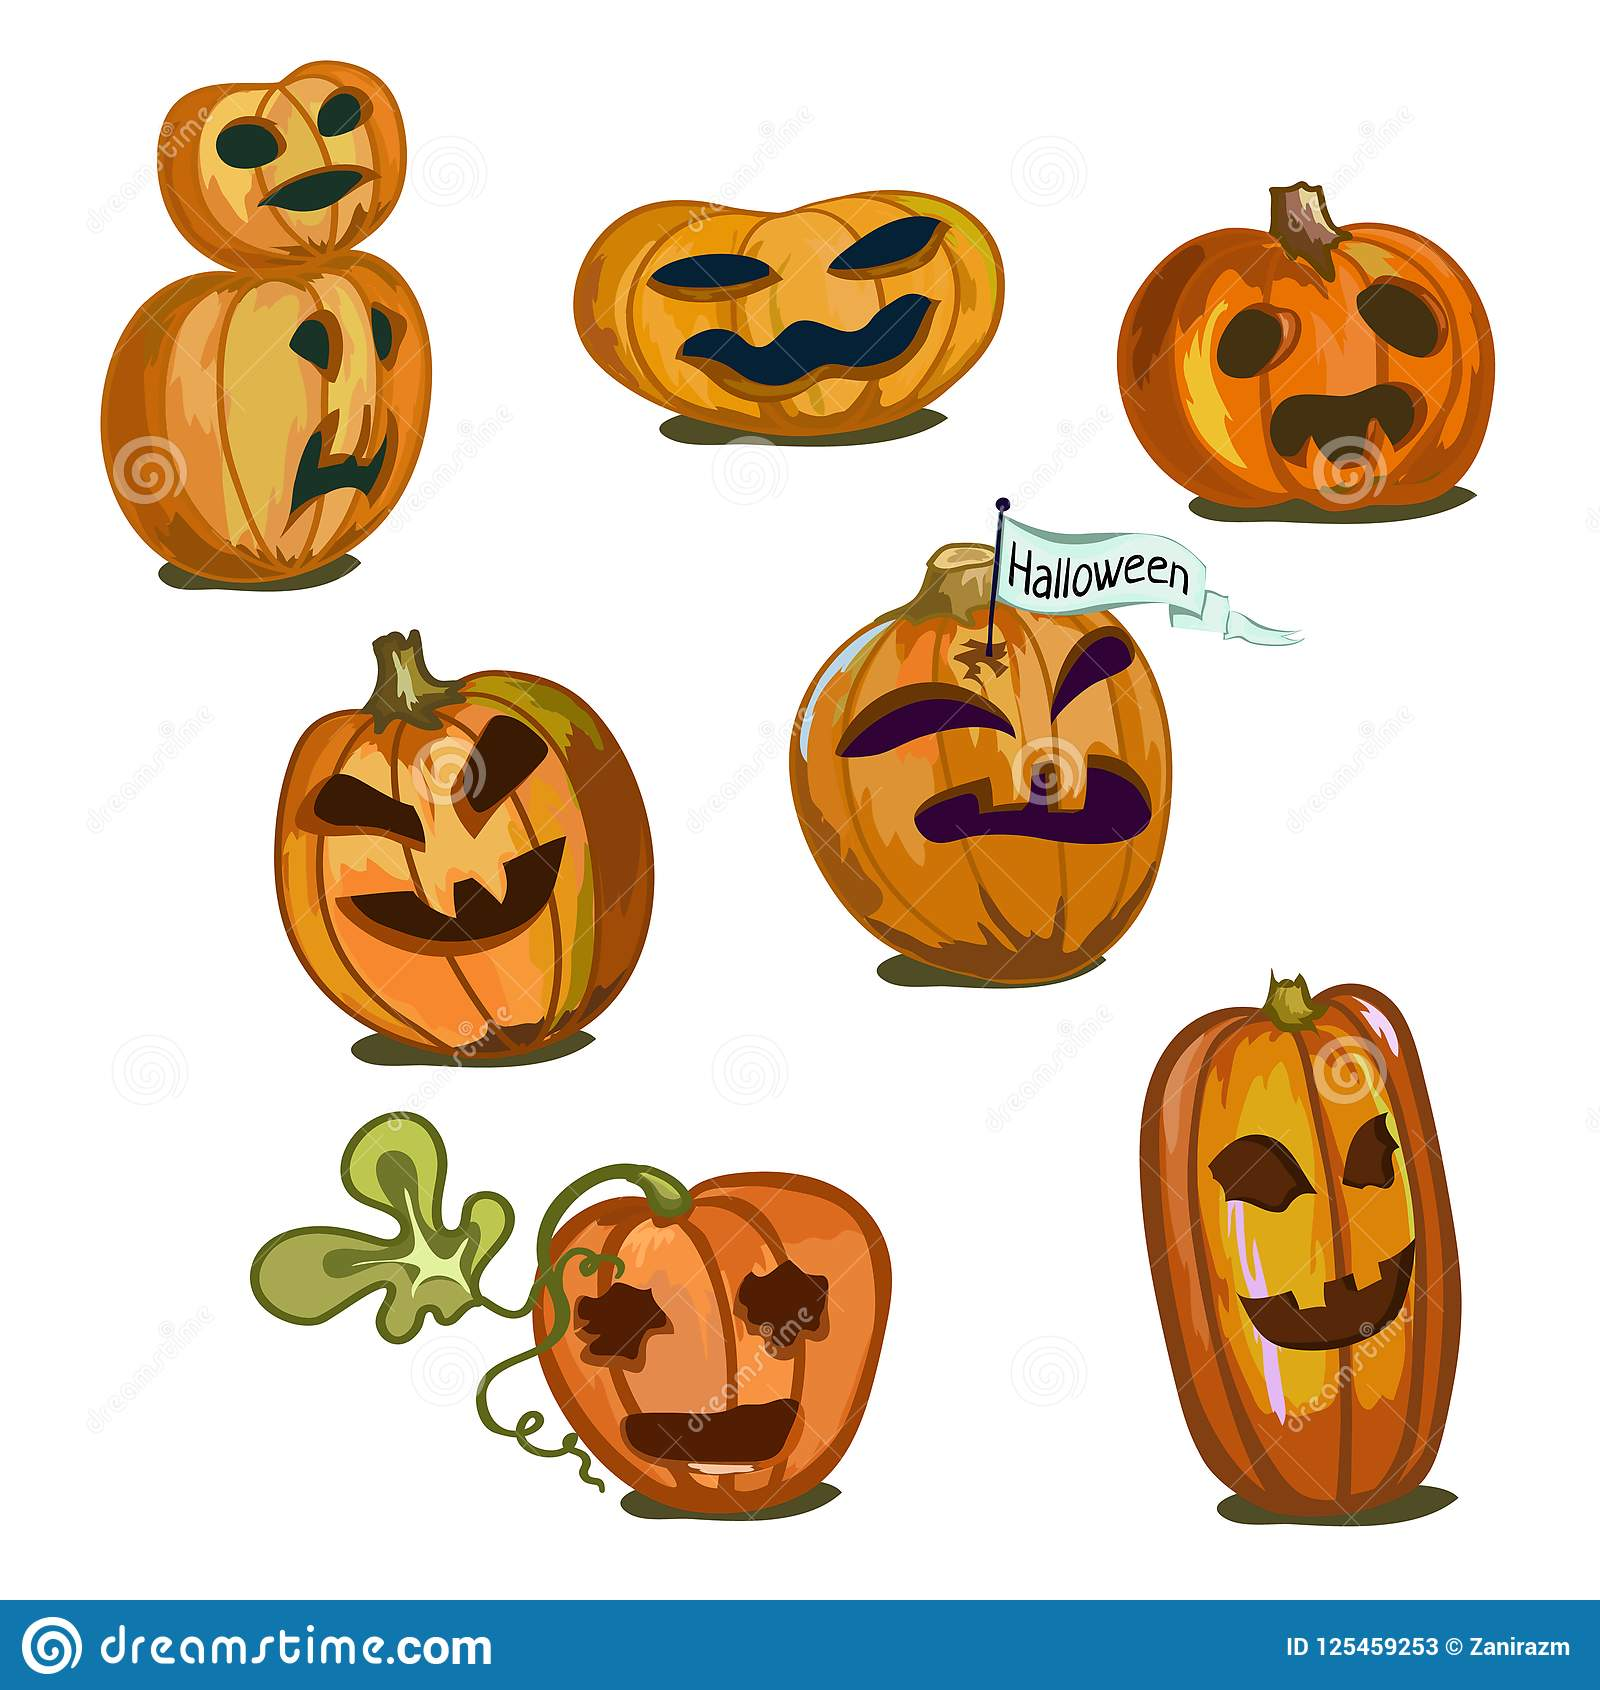 Pumpkins Of Different Sizes And Shapes For Halloween Stock